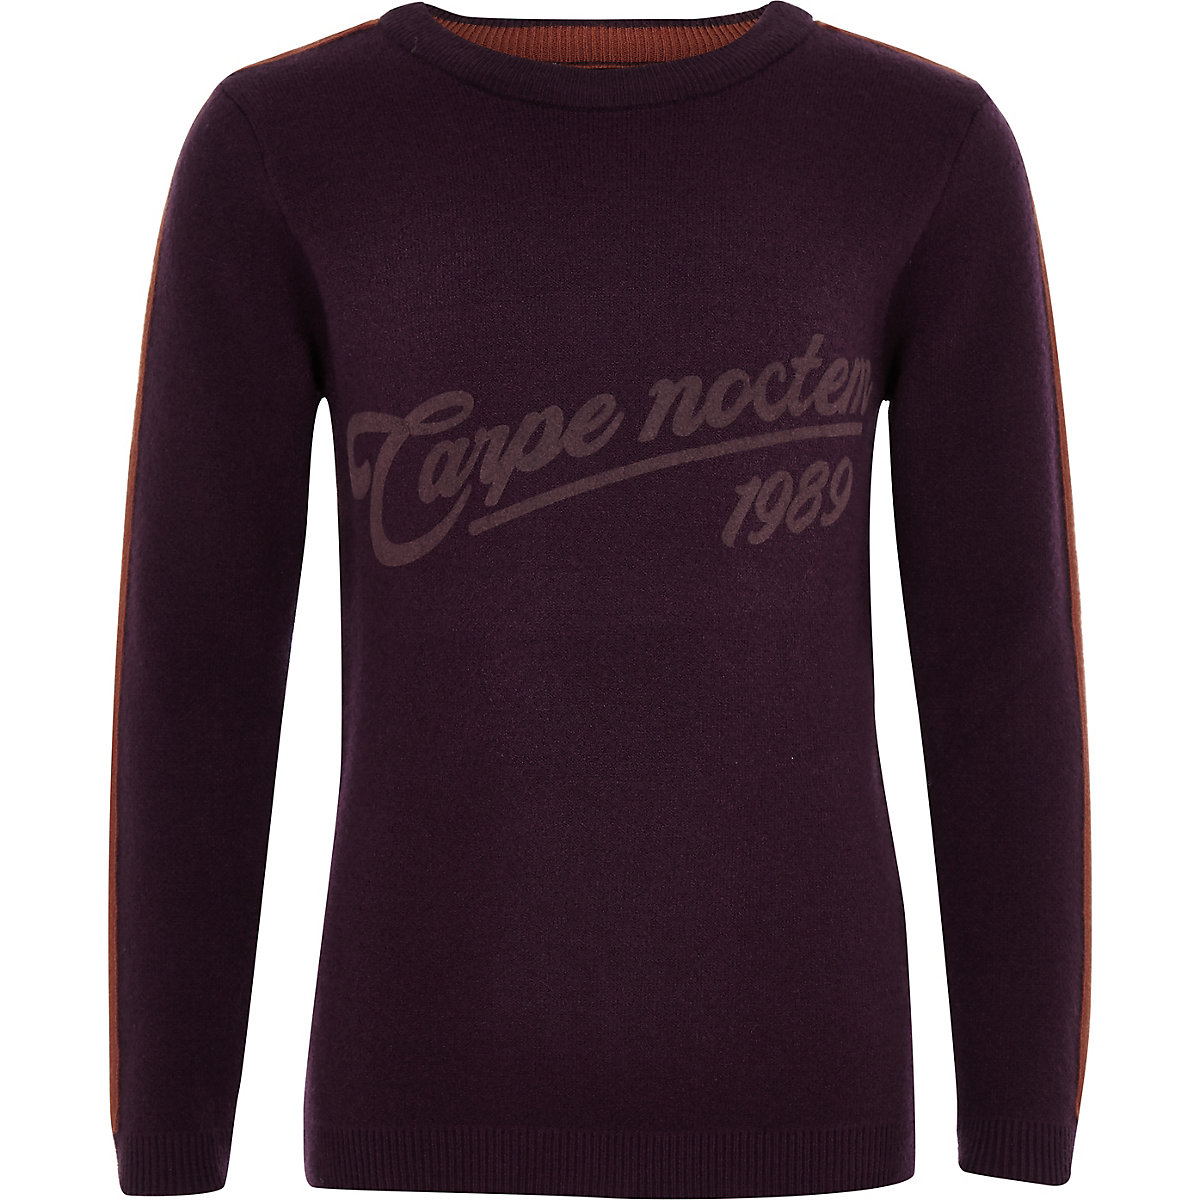 Boys purple 'Carpe noctem' sweater